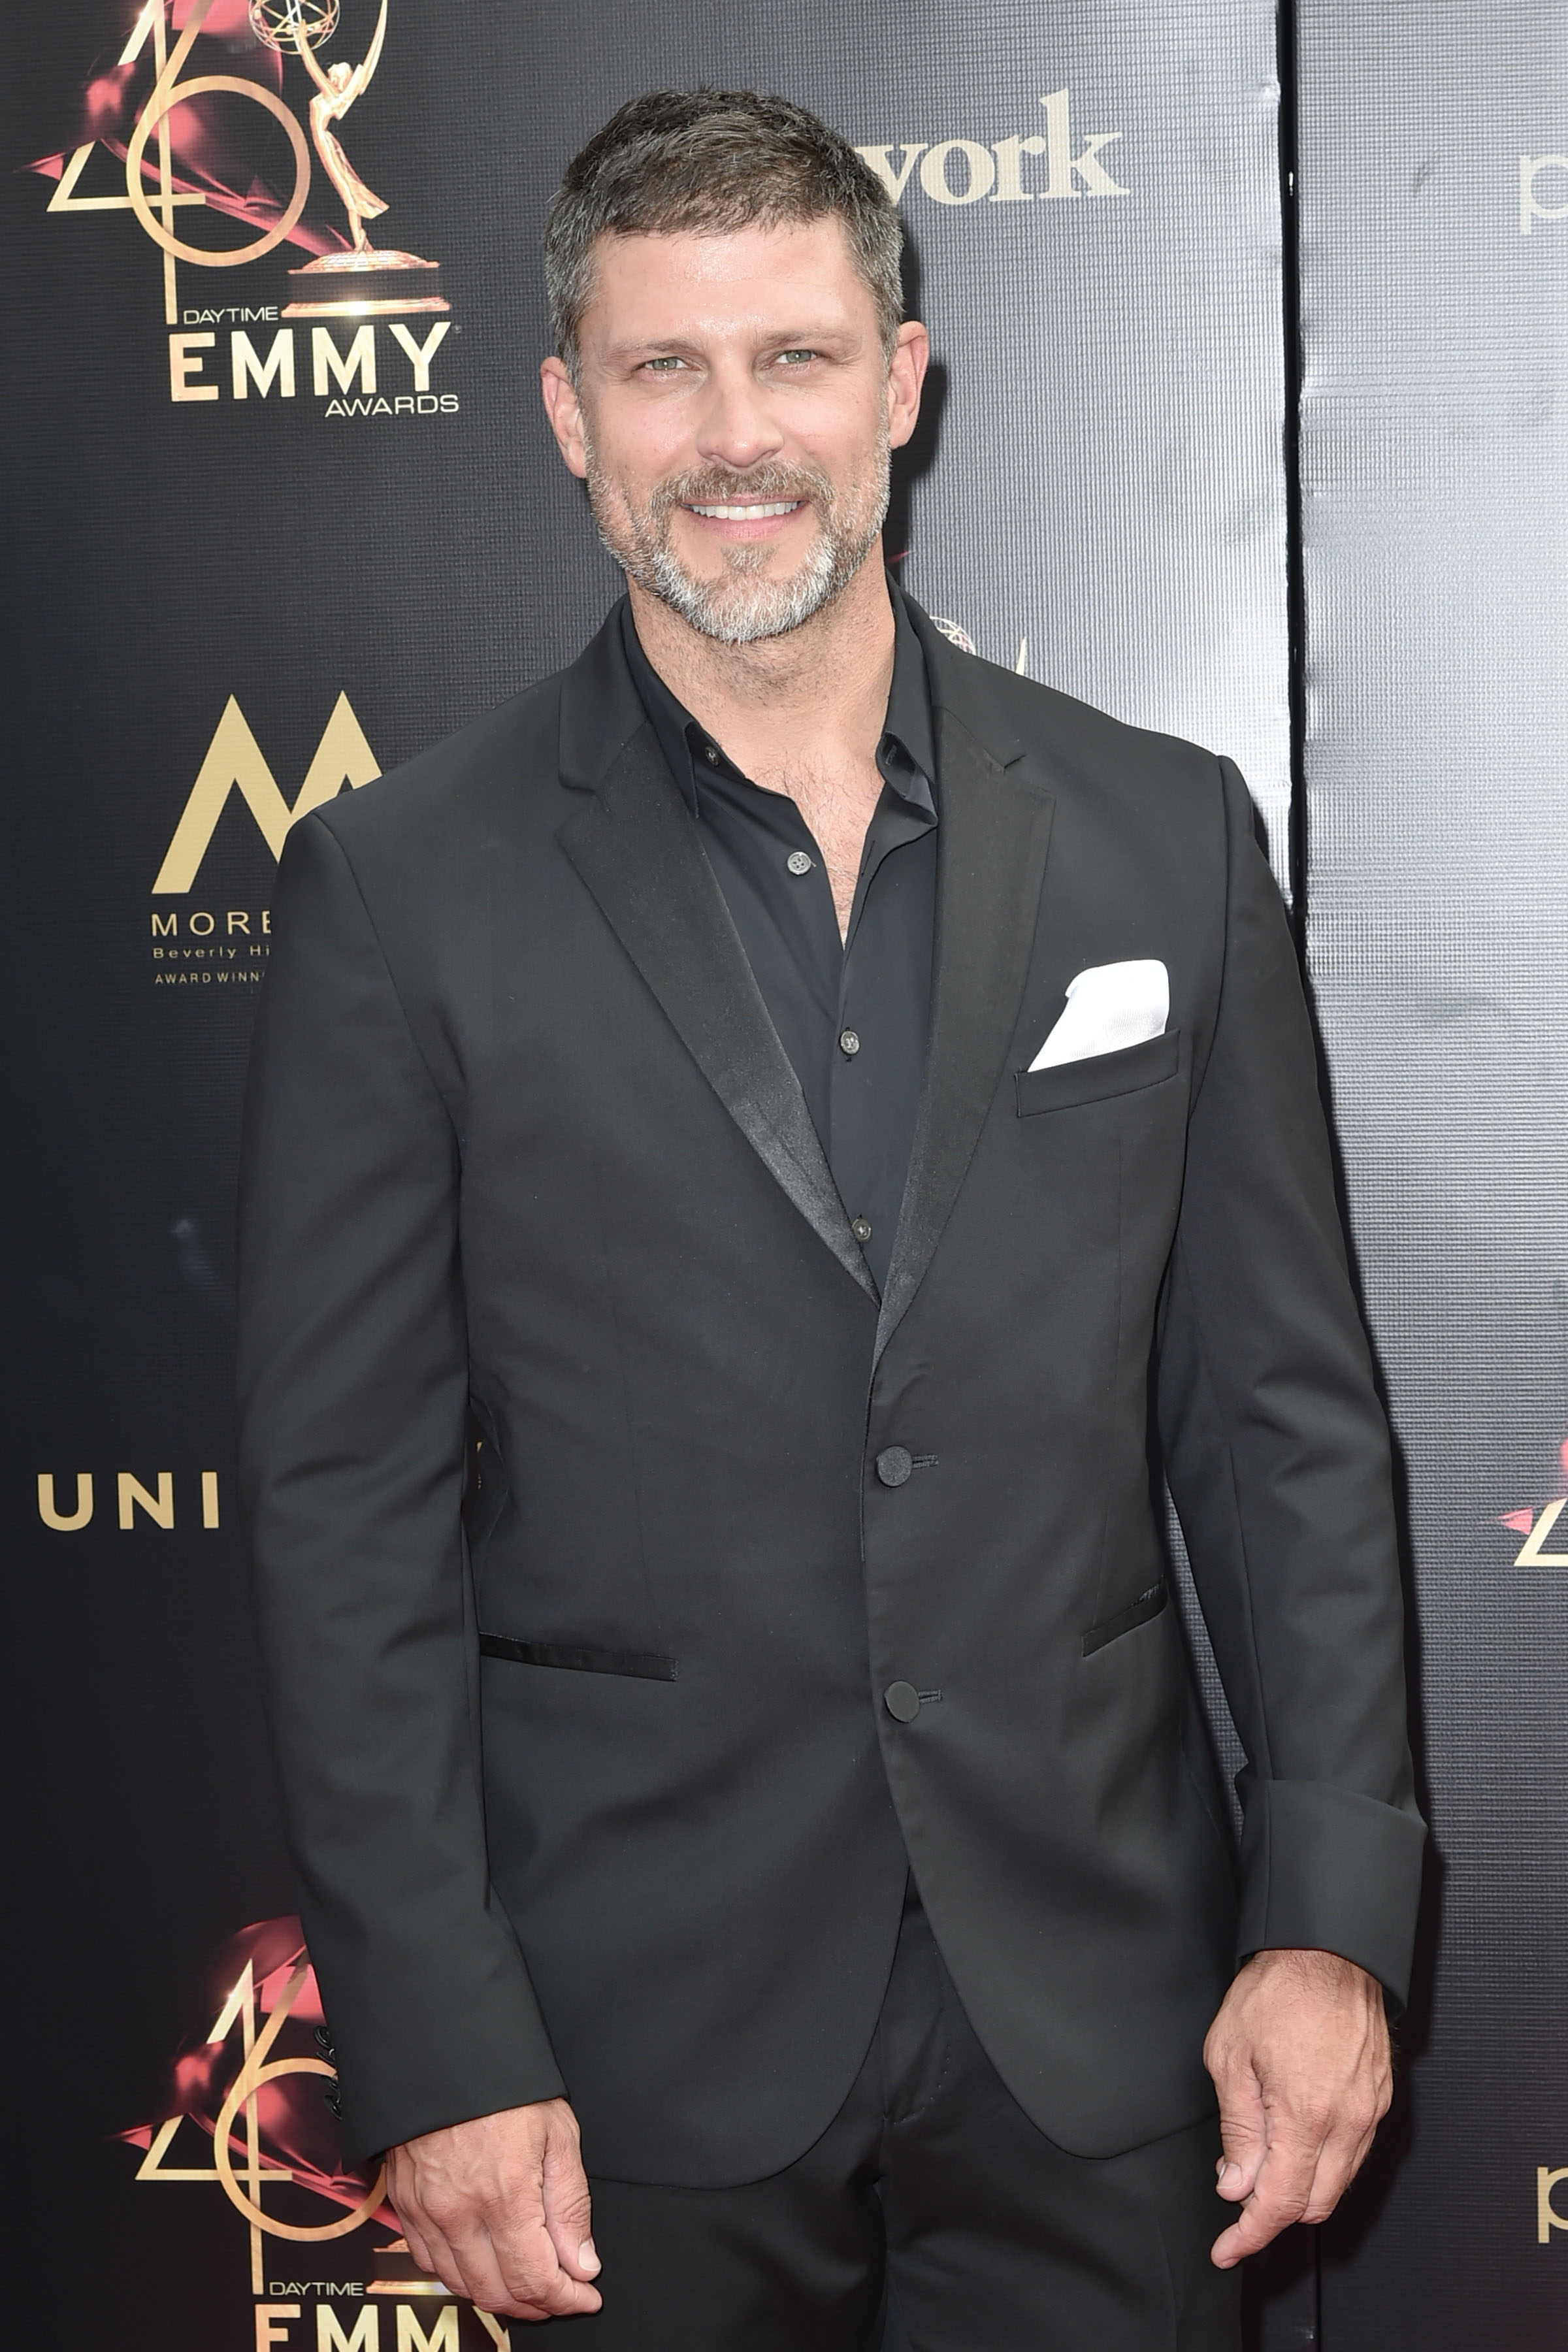 Greg Vaughan attends the 46th annual Daytime Emmy Awards on May 05, 2019, in Pasadena, California. | Source: Getty Images